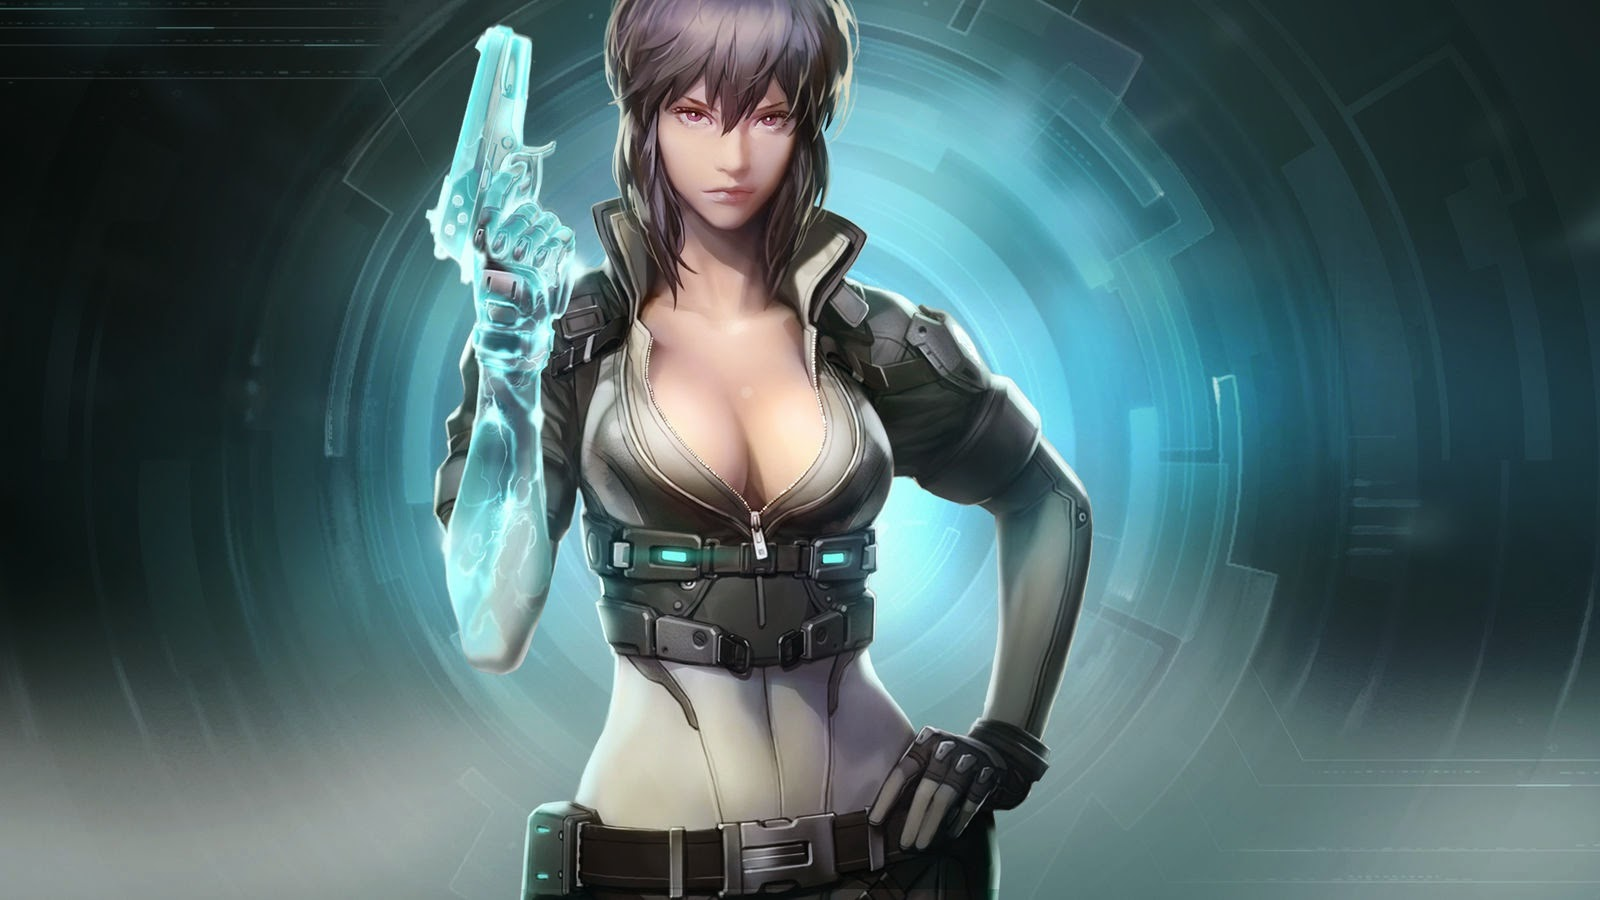 GHOST IN THE SHELL (2017) ... SCARLETT JOHANSSON Takes Anime To A Whole HOTTER Level!!!